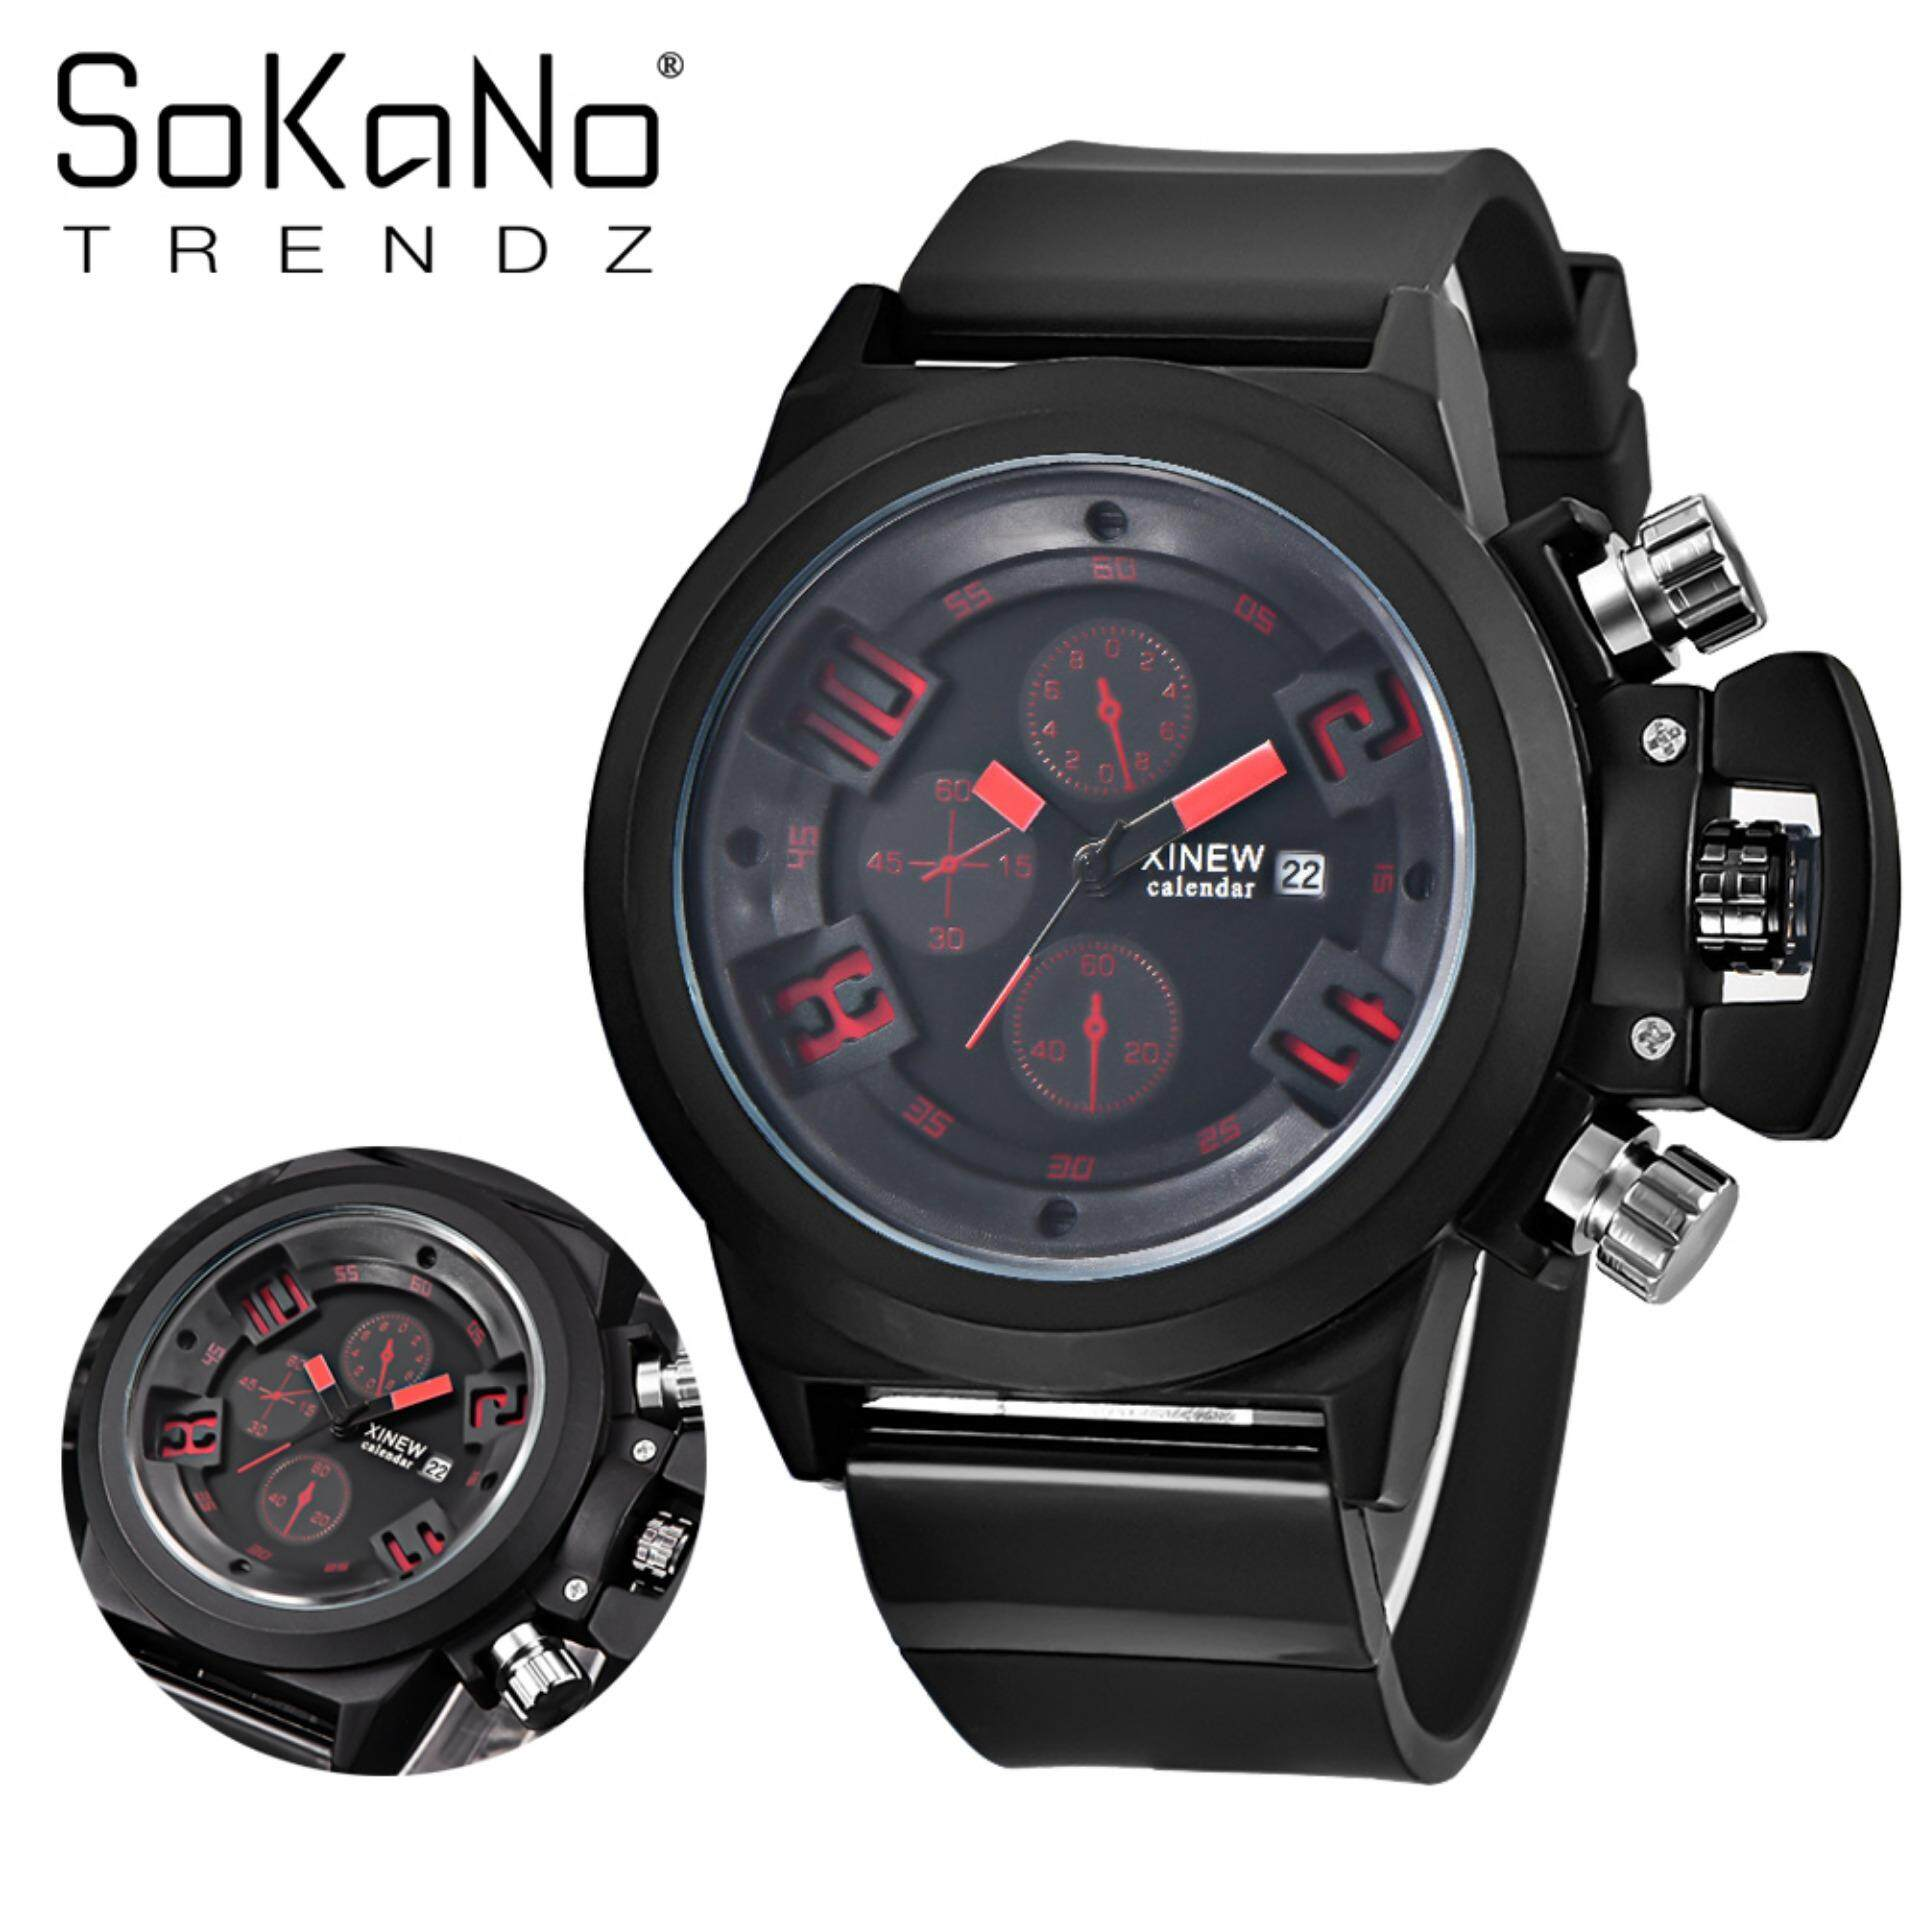 SoKaNo Trendz 7166 Men Premium Sport Watch - Red